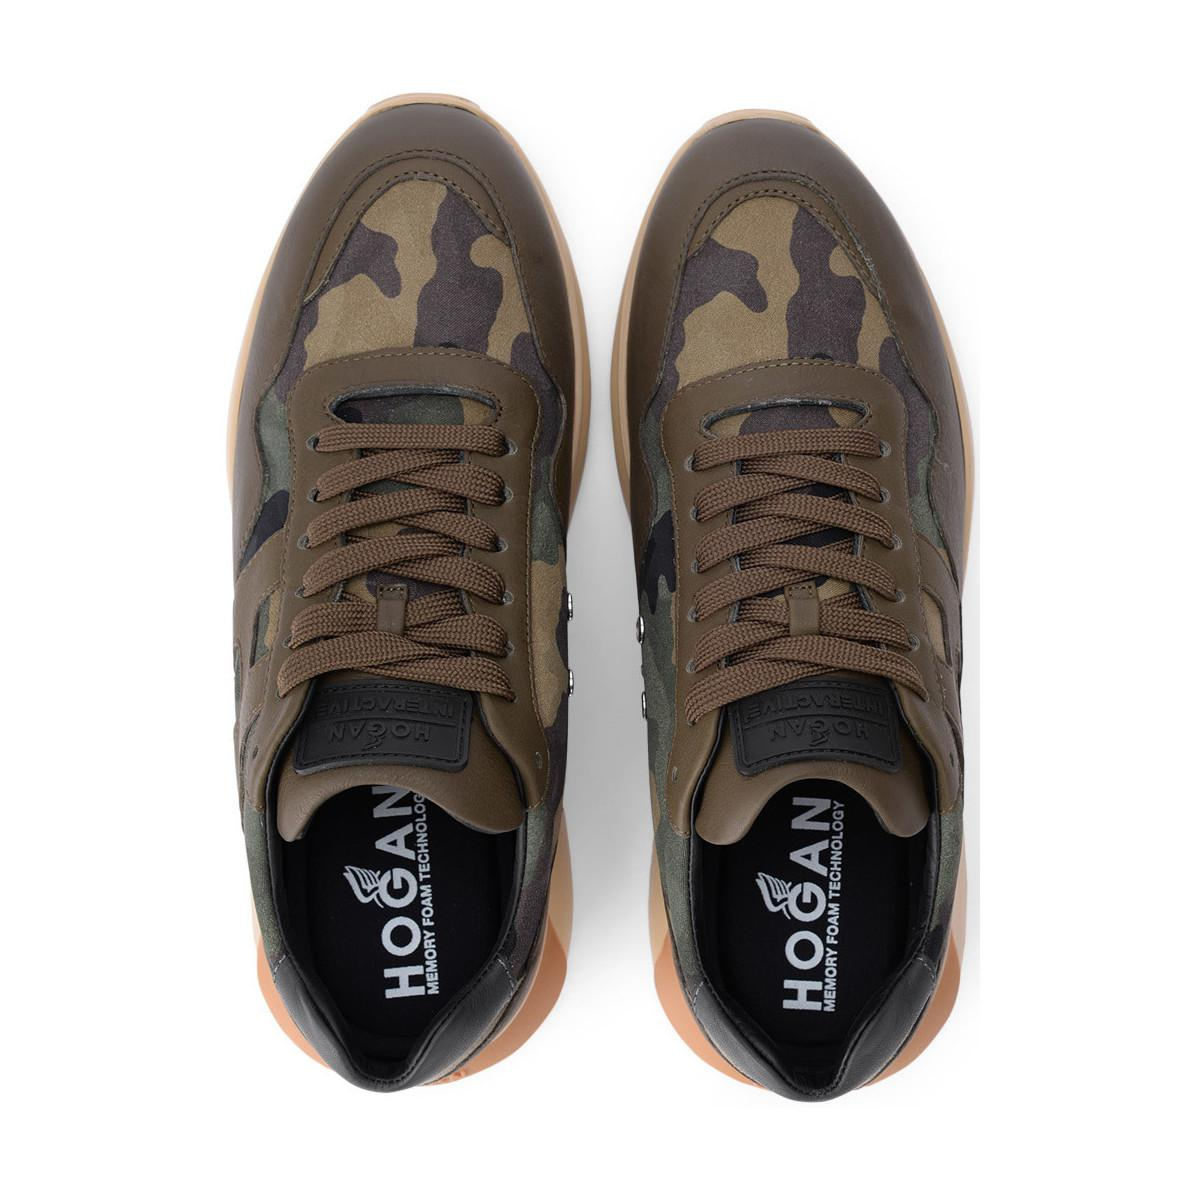 Hogan INTERACTIVE3 Men/'s sneakers shoes in camouflage fabric and green leather